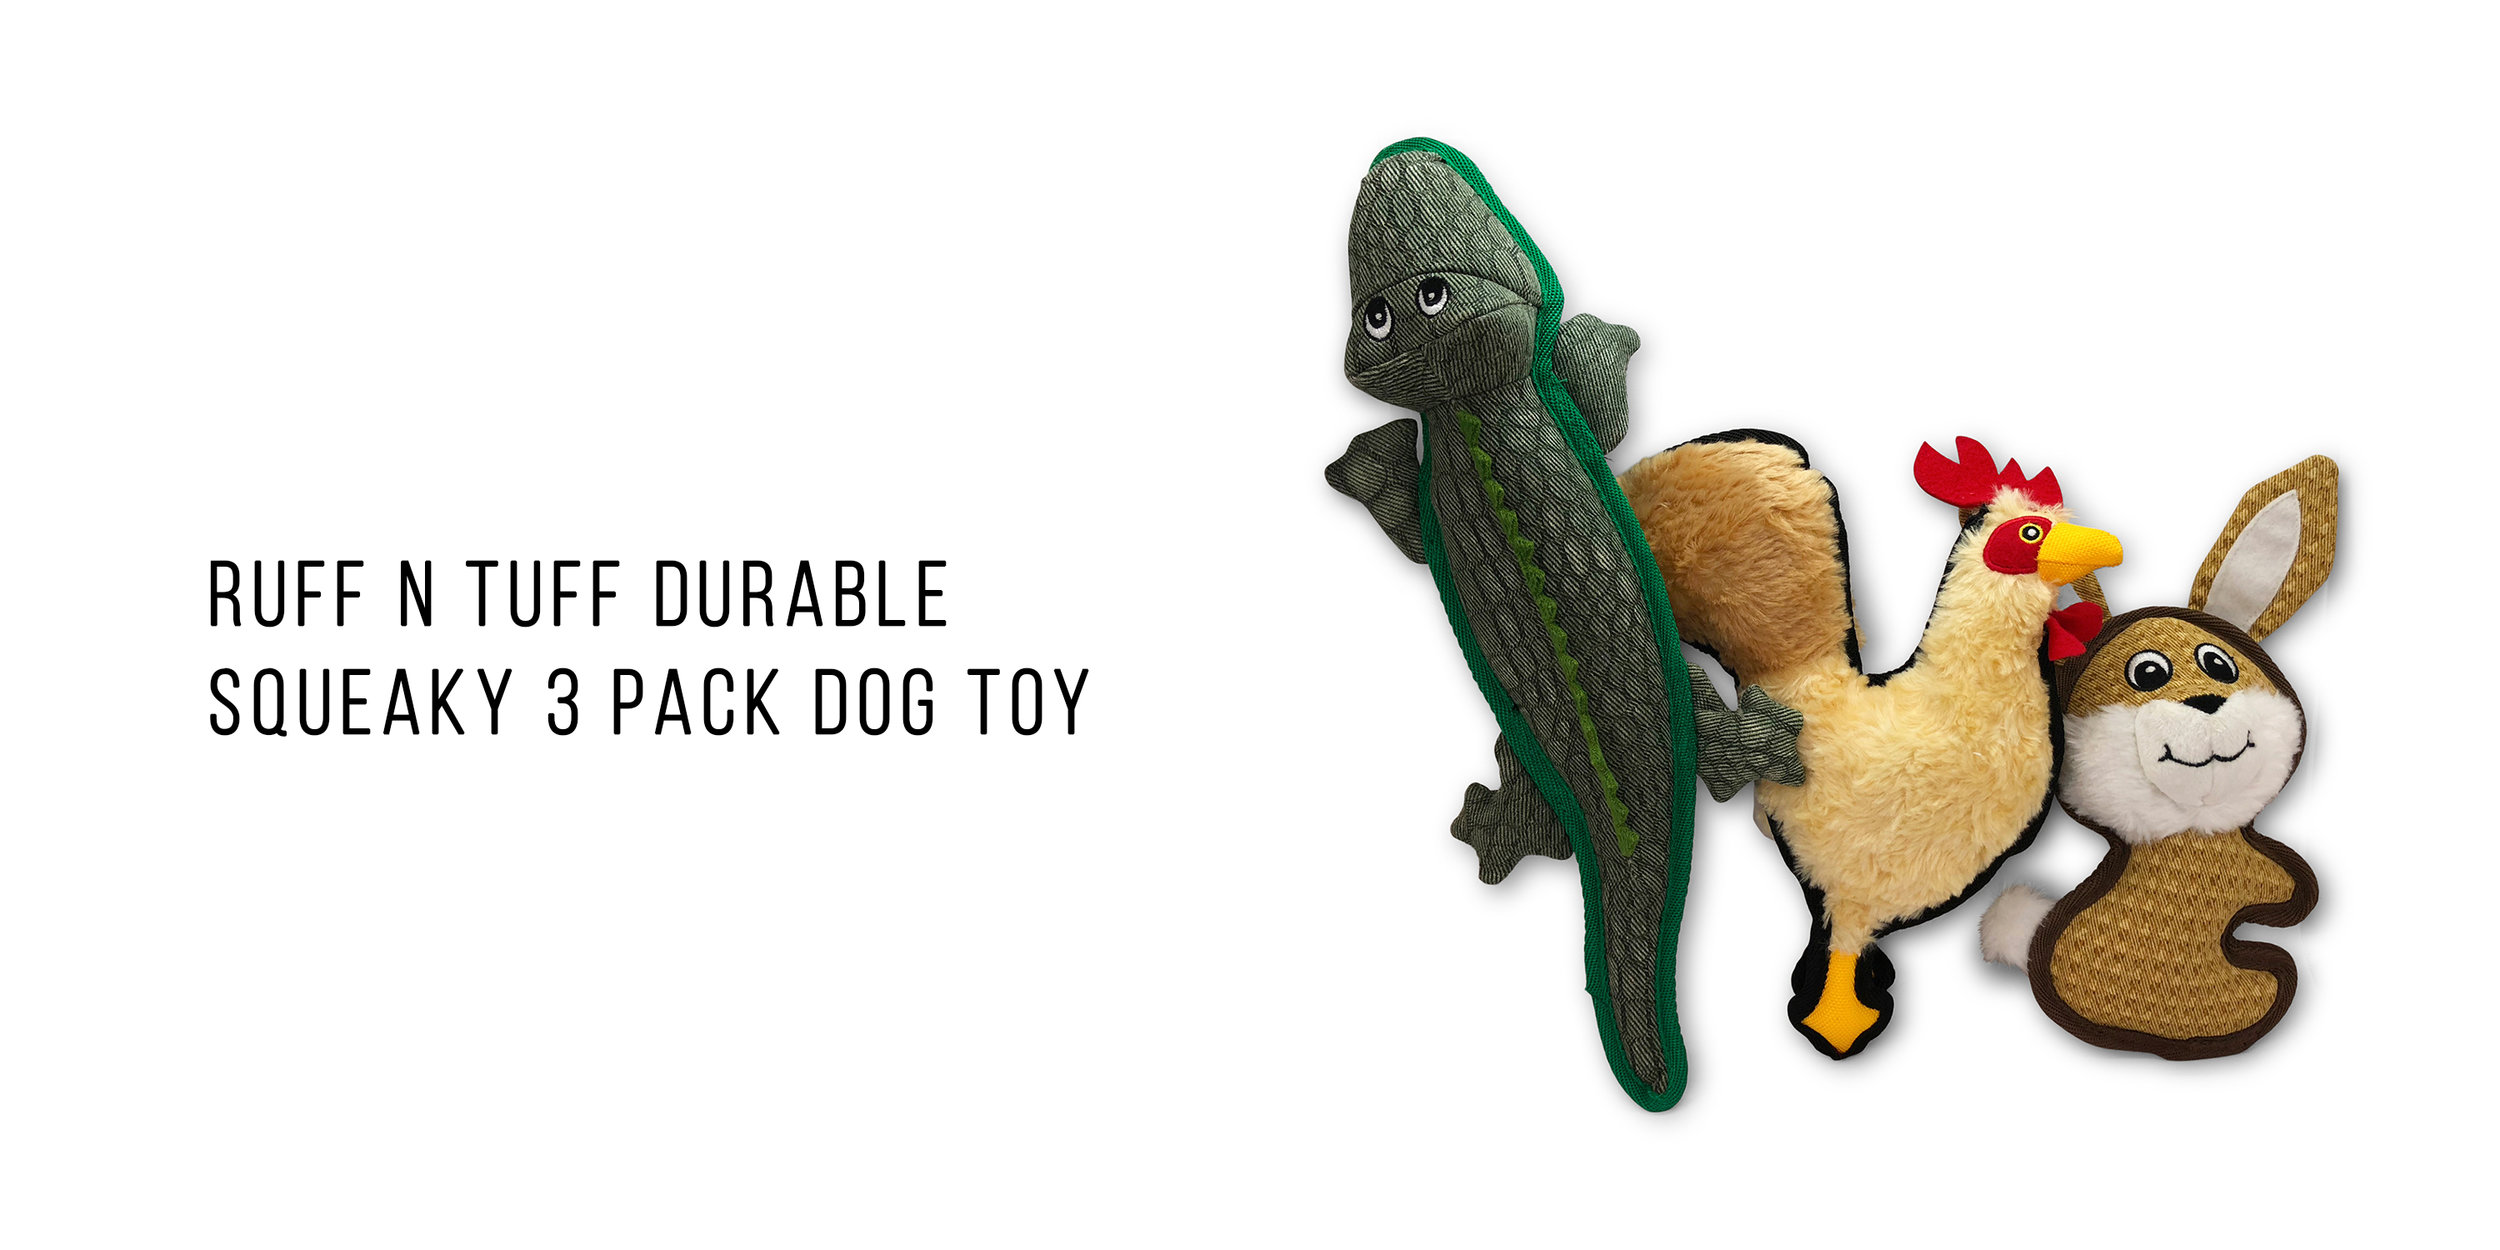 Pet Craft Supply Super Ruff N Tuff Plush Dog Toy Animal Assortment 3 Pack Tough Strong Durable Squeaky Dog Toy